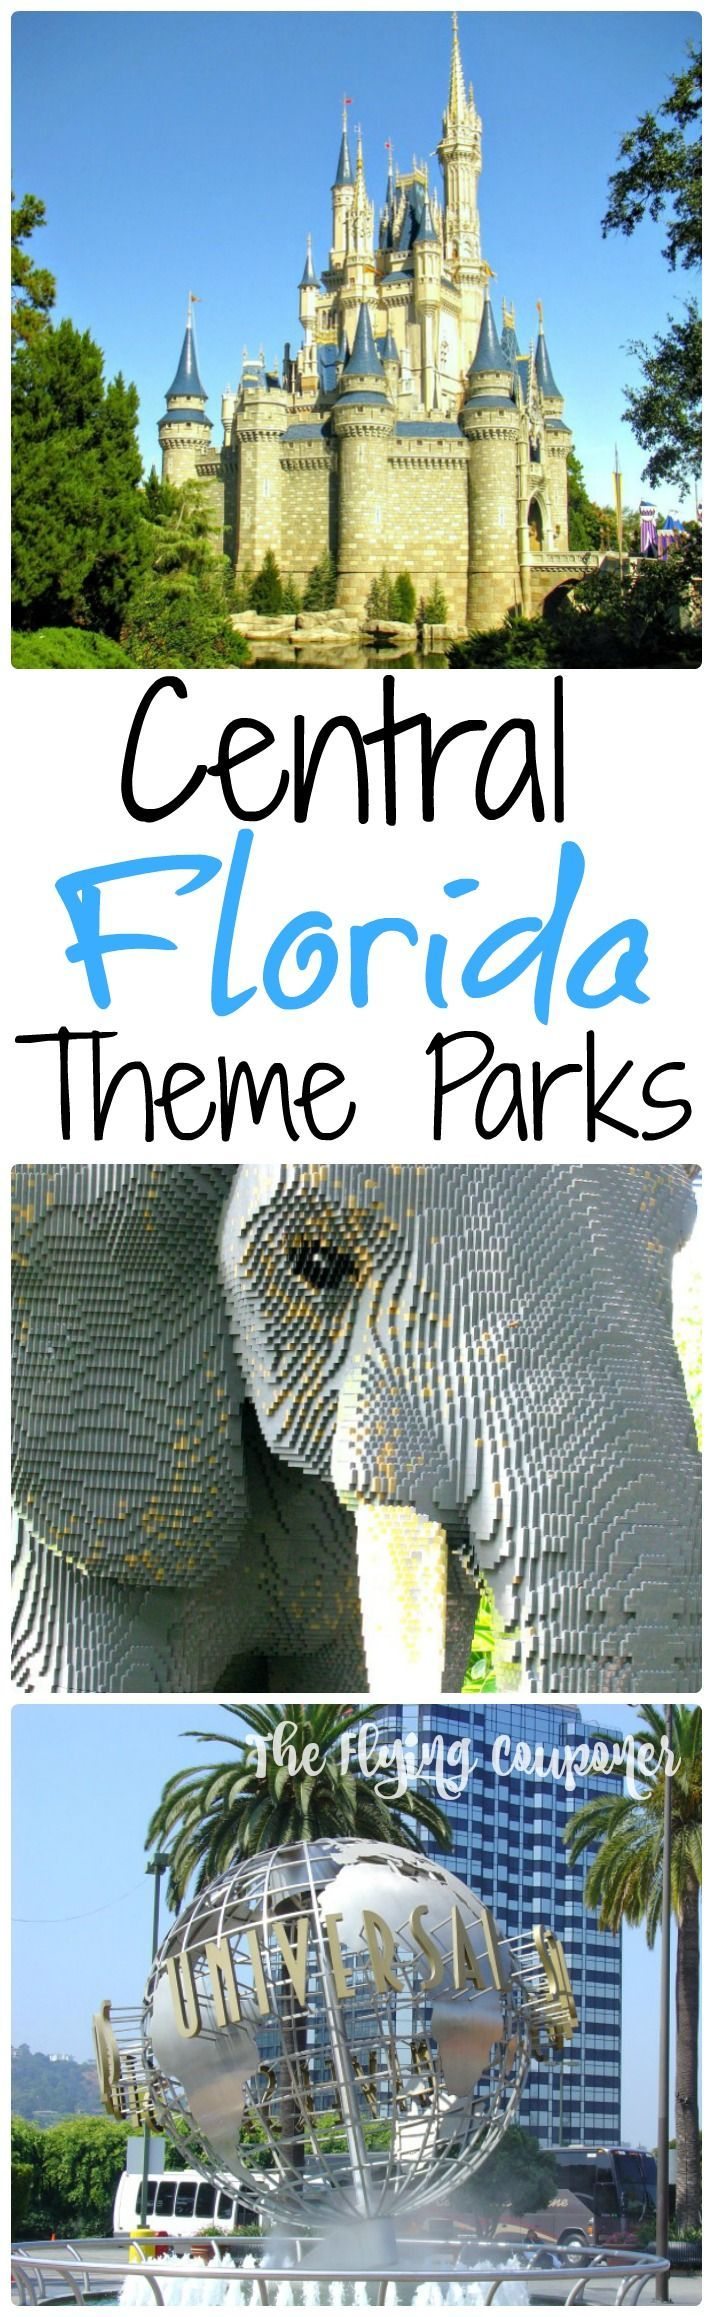 Central Florida Theme Parks. Things to do in Florida during your vacations. Legoland Orlando, Universal Studio Orlando, Bush Gardens Tampa, Disney World, I-Drive 360, SeaWorld Orlando. The Flying Couponer | Family. Travel. Saving Money.